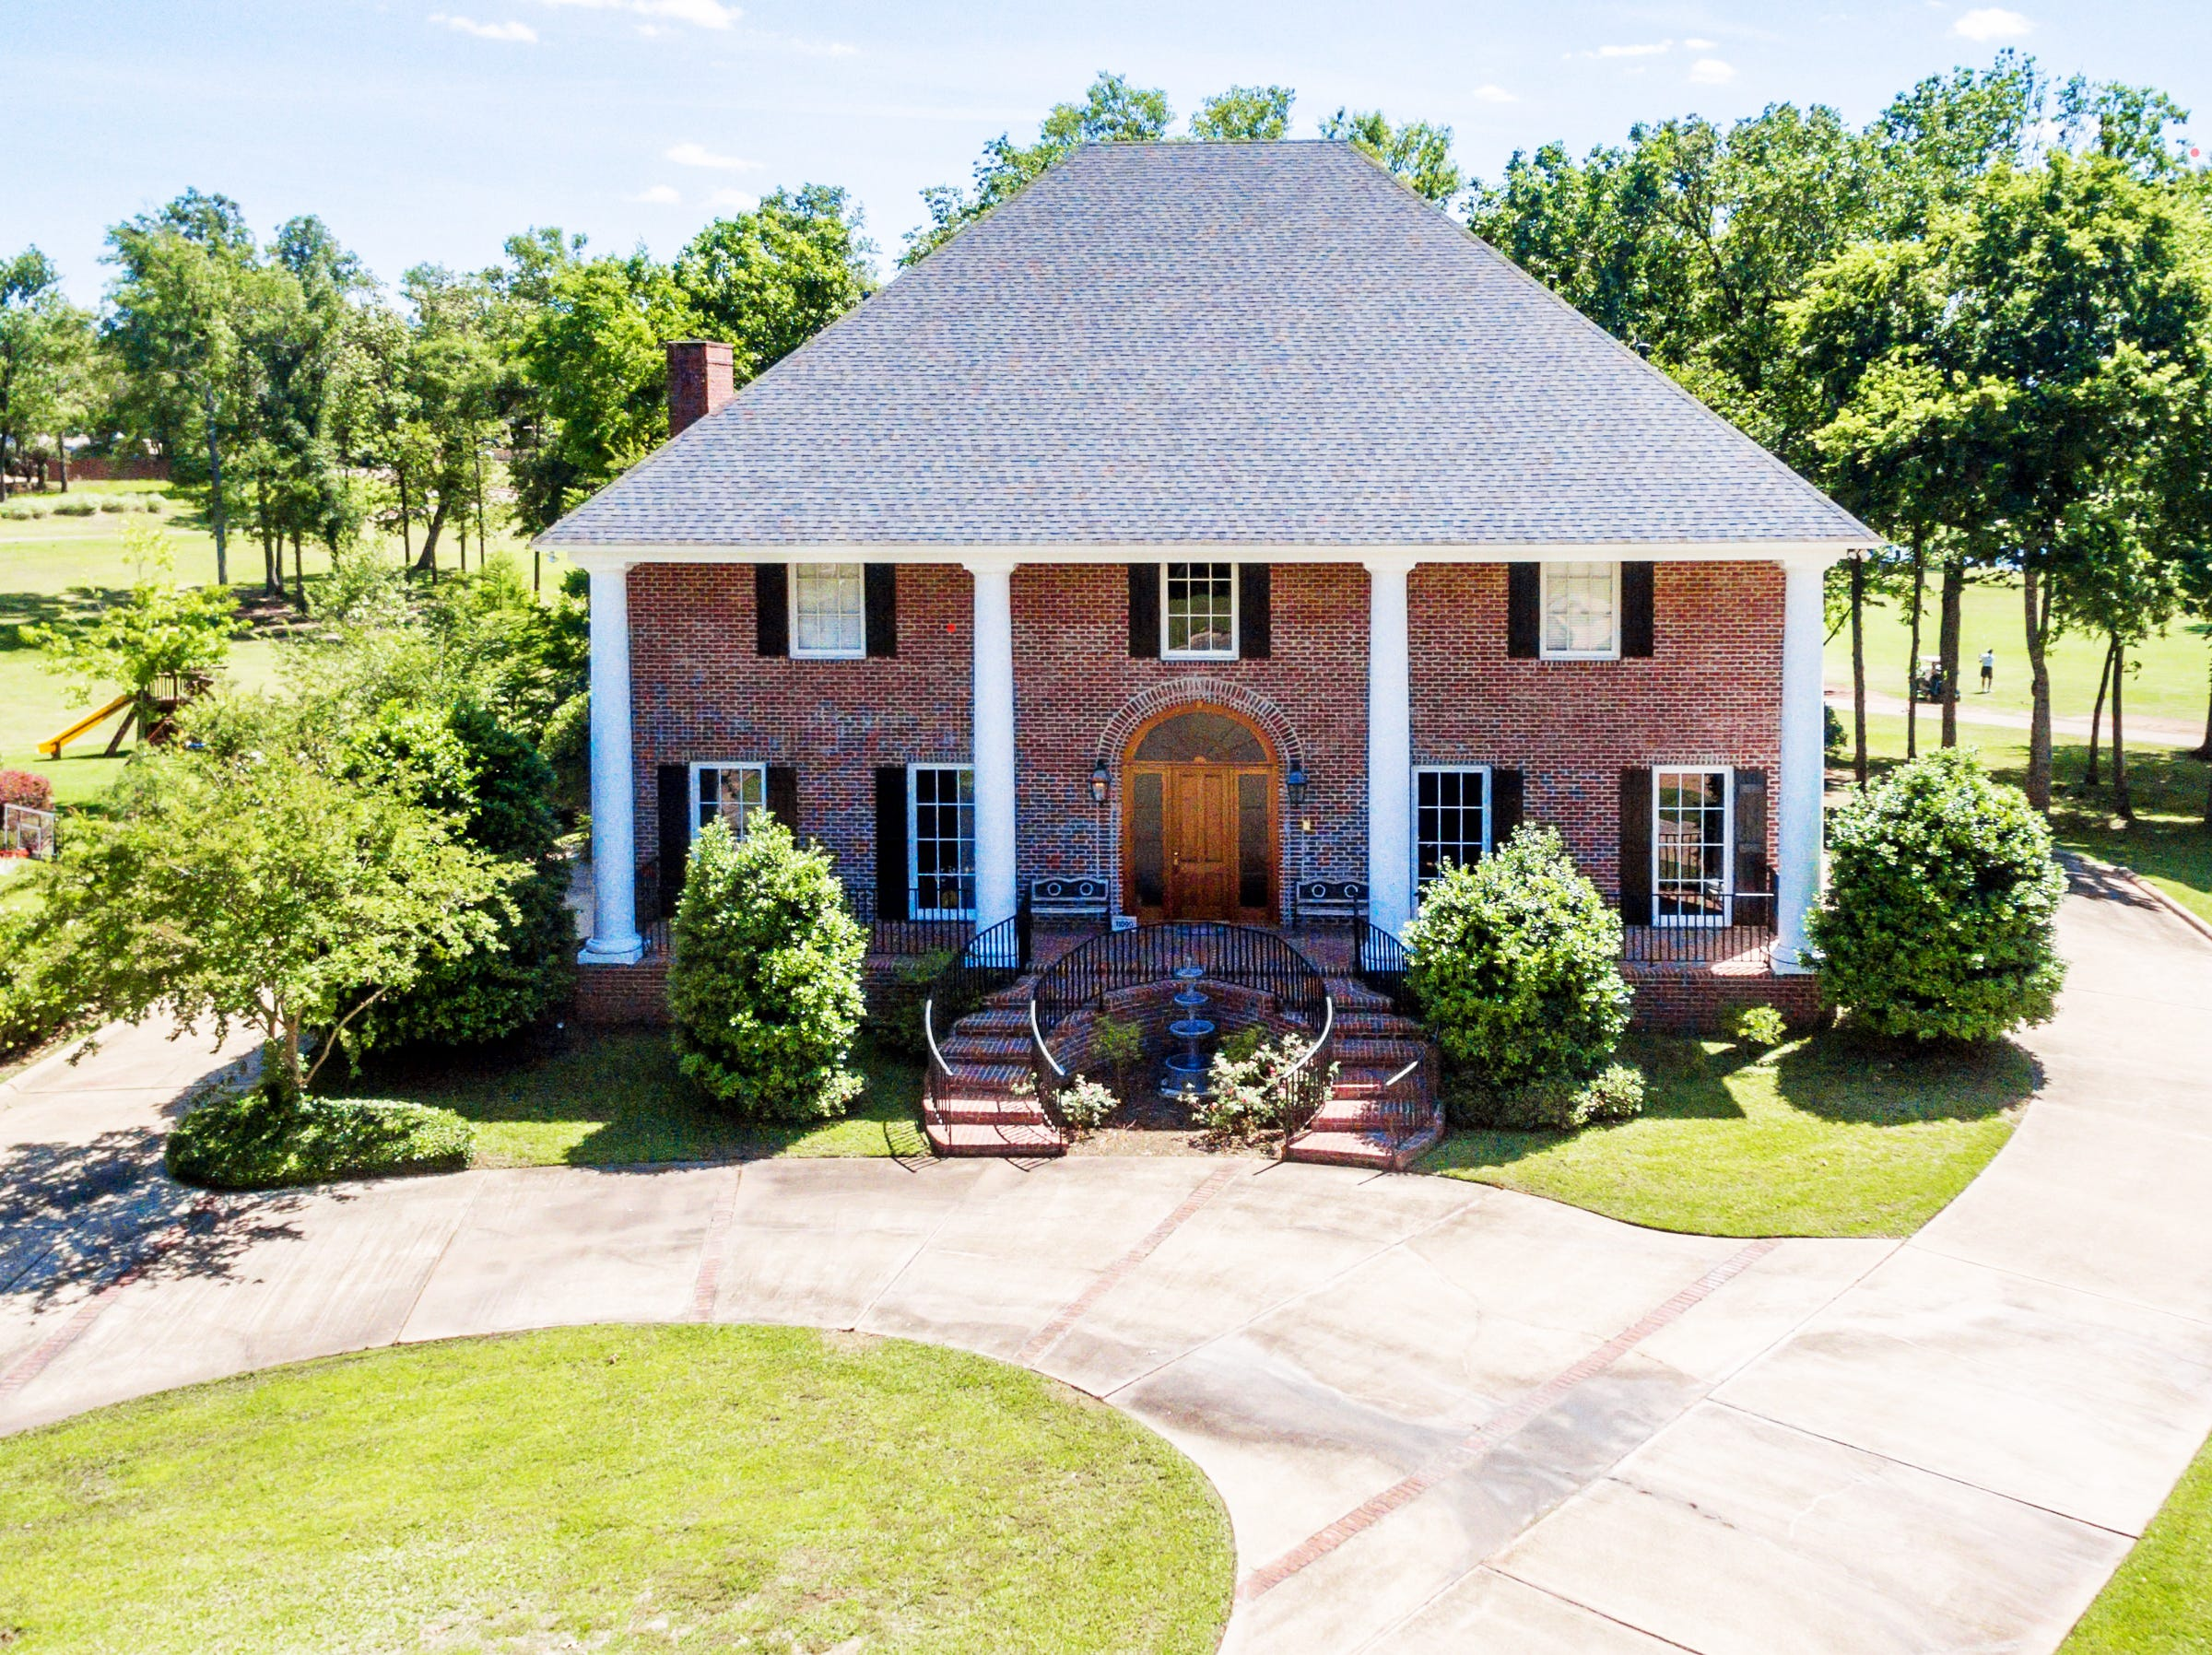 11090 Ashland Way, Shreveport  Price: $624,900  Details: 5 bedrooms, 4.5 bathrooms, 5,033 square feet  Special features: Golf course living, nestled between two outstanding lake view holes, modeled after A. Hayes Town's style, densely wooded backyard.   Contact: Paige Hoffpauir, 798-7223